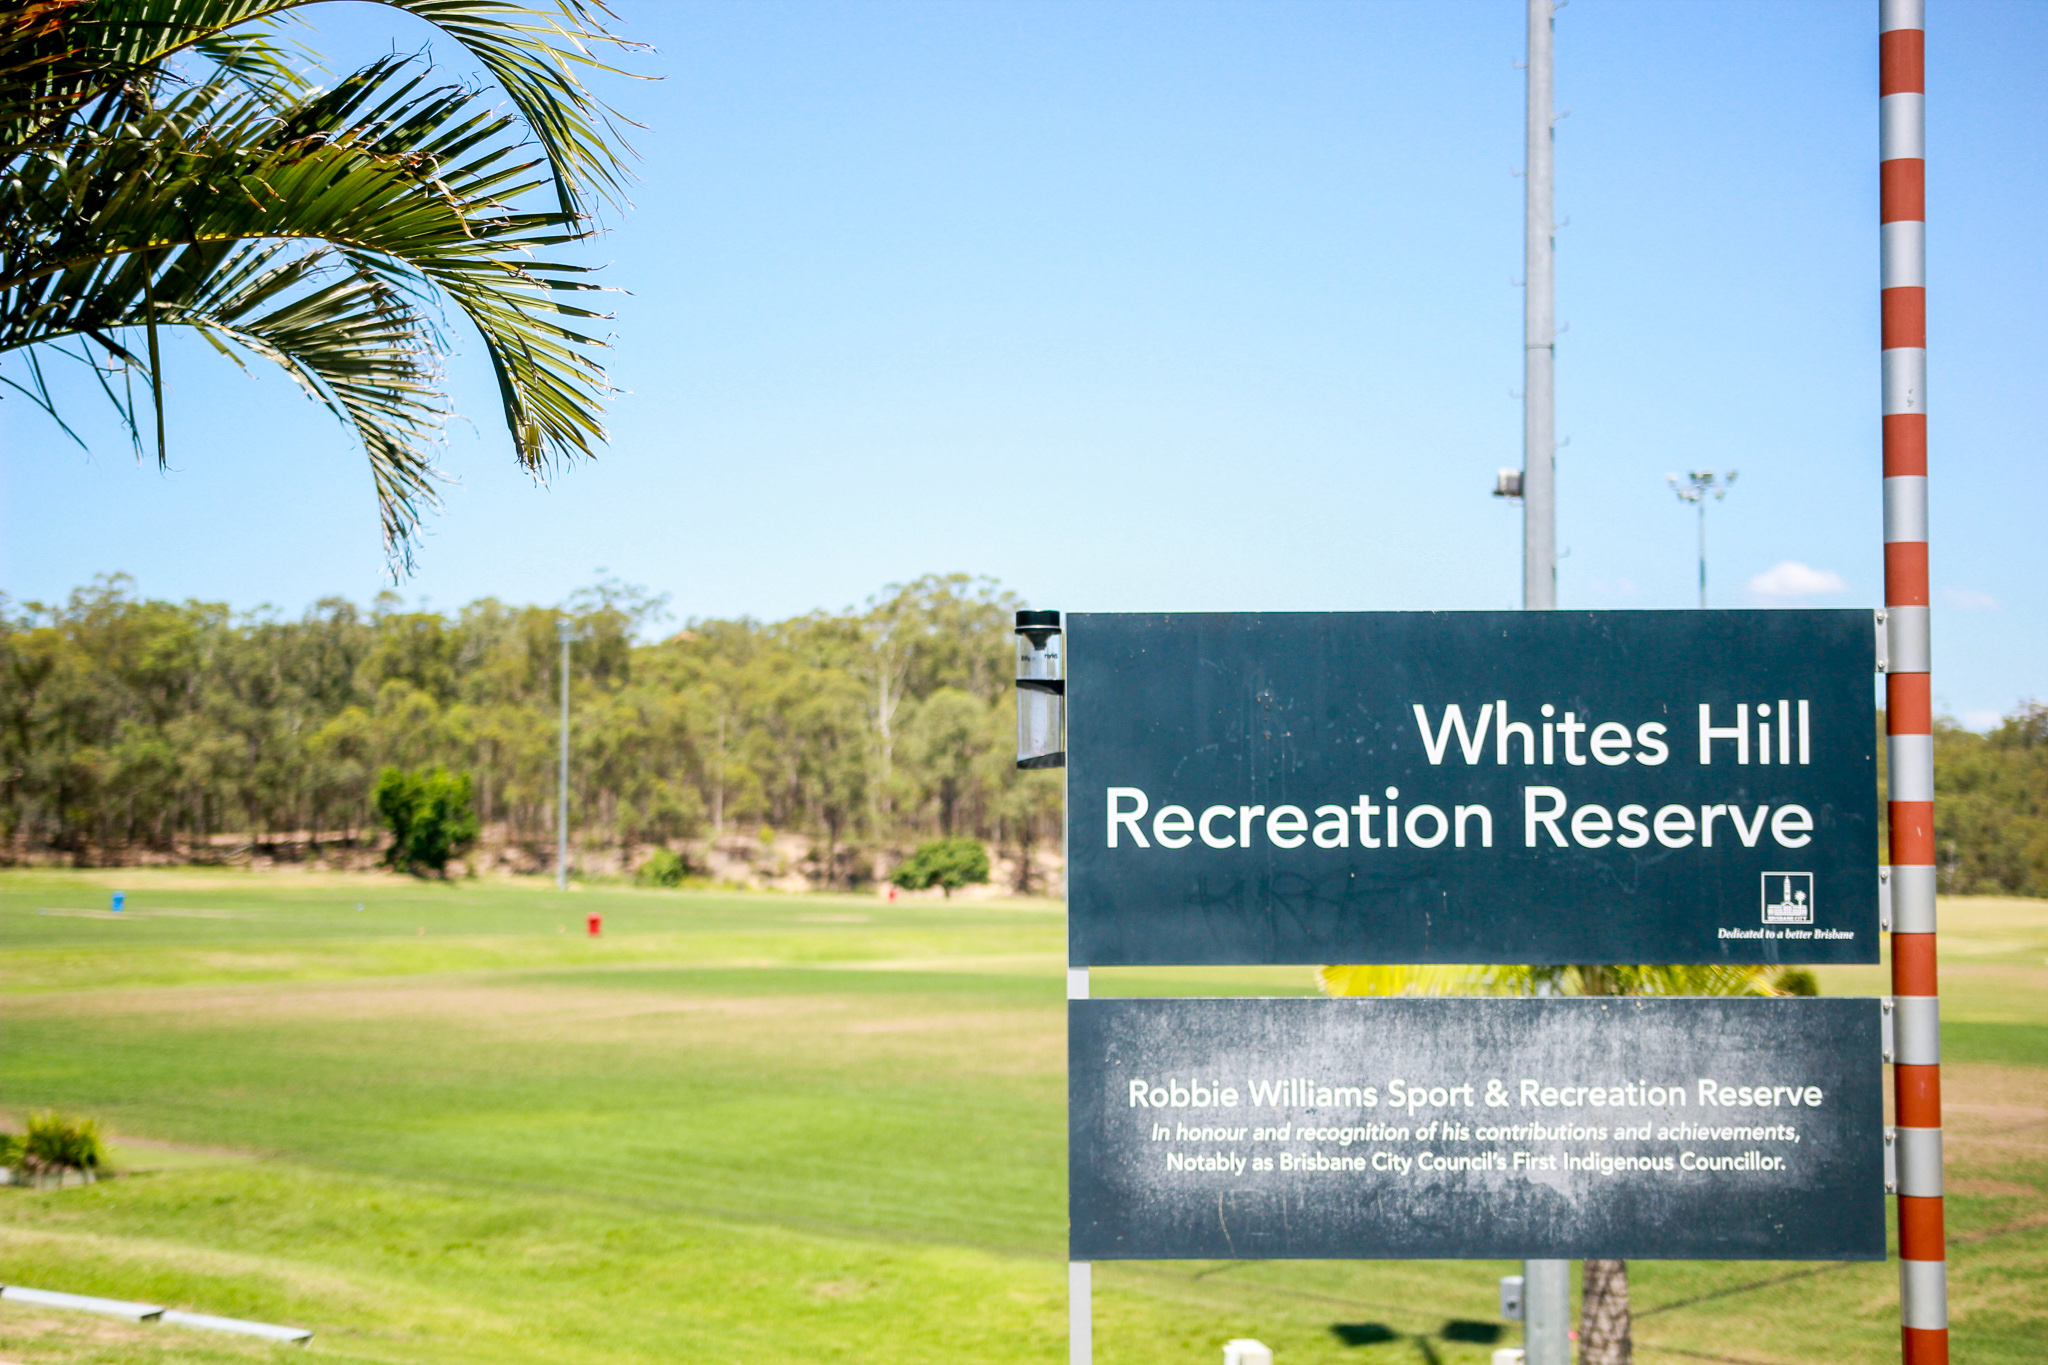 Whites Hill recreation reserve